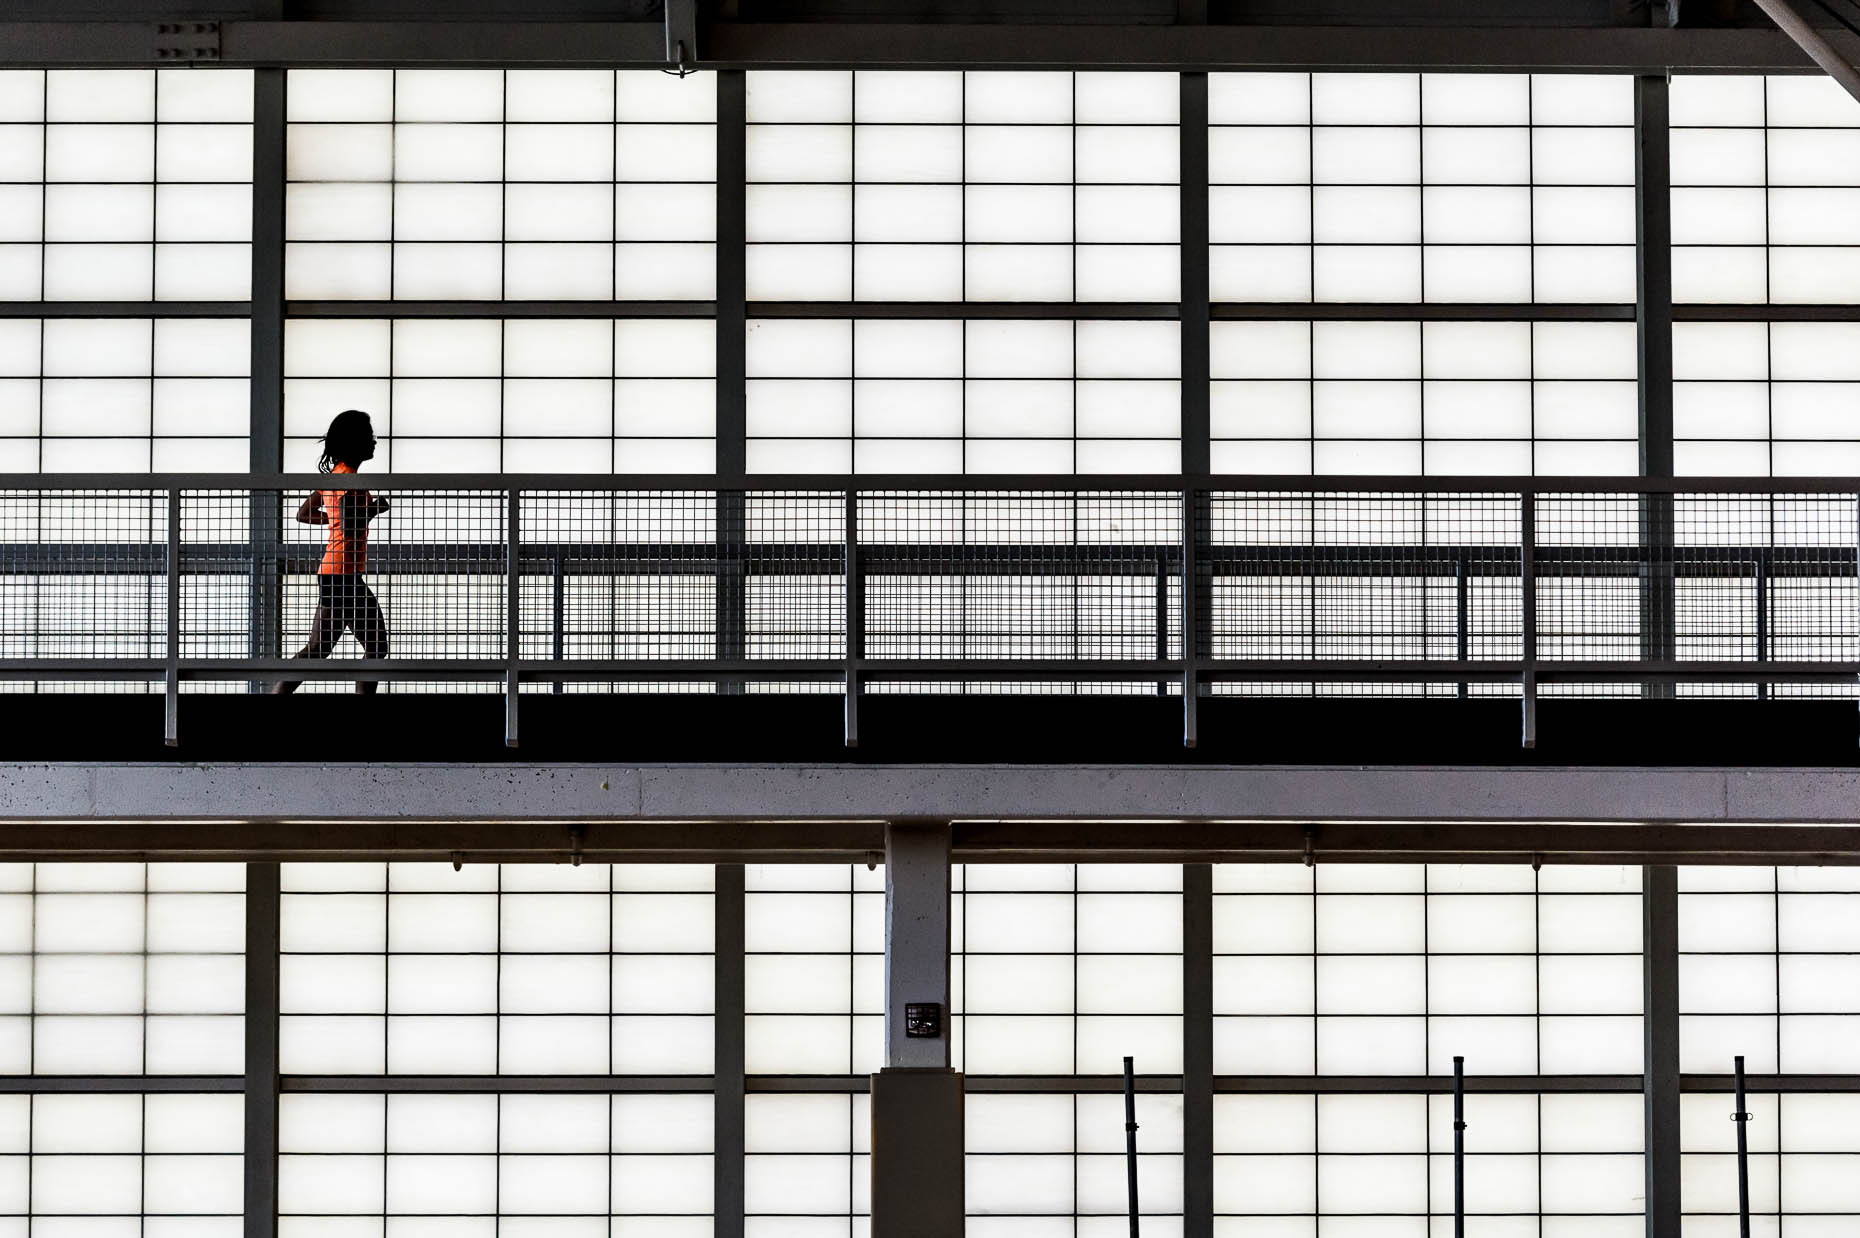 Female-runner-on-indoor-track